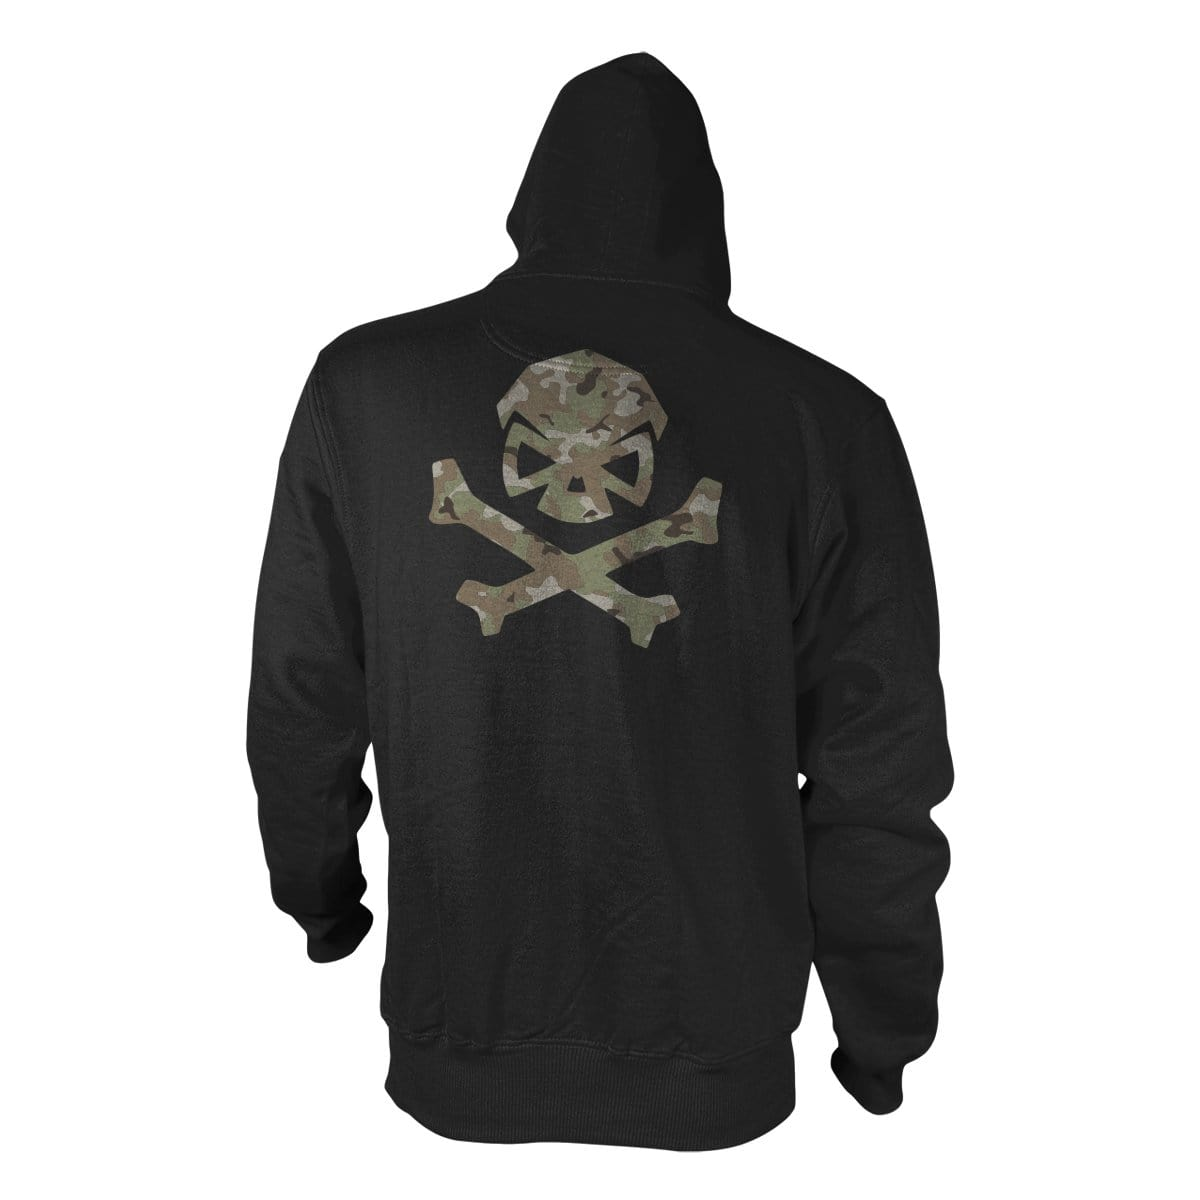 Multicam Logo Hoodie - Black/Green_Multicam - Hoodies - Pipe Hitters Union